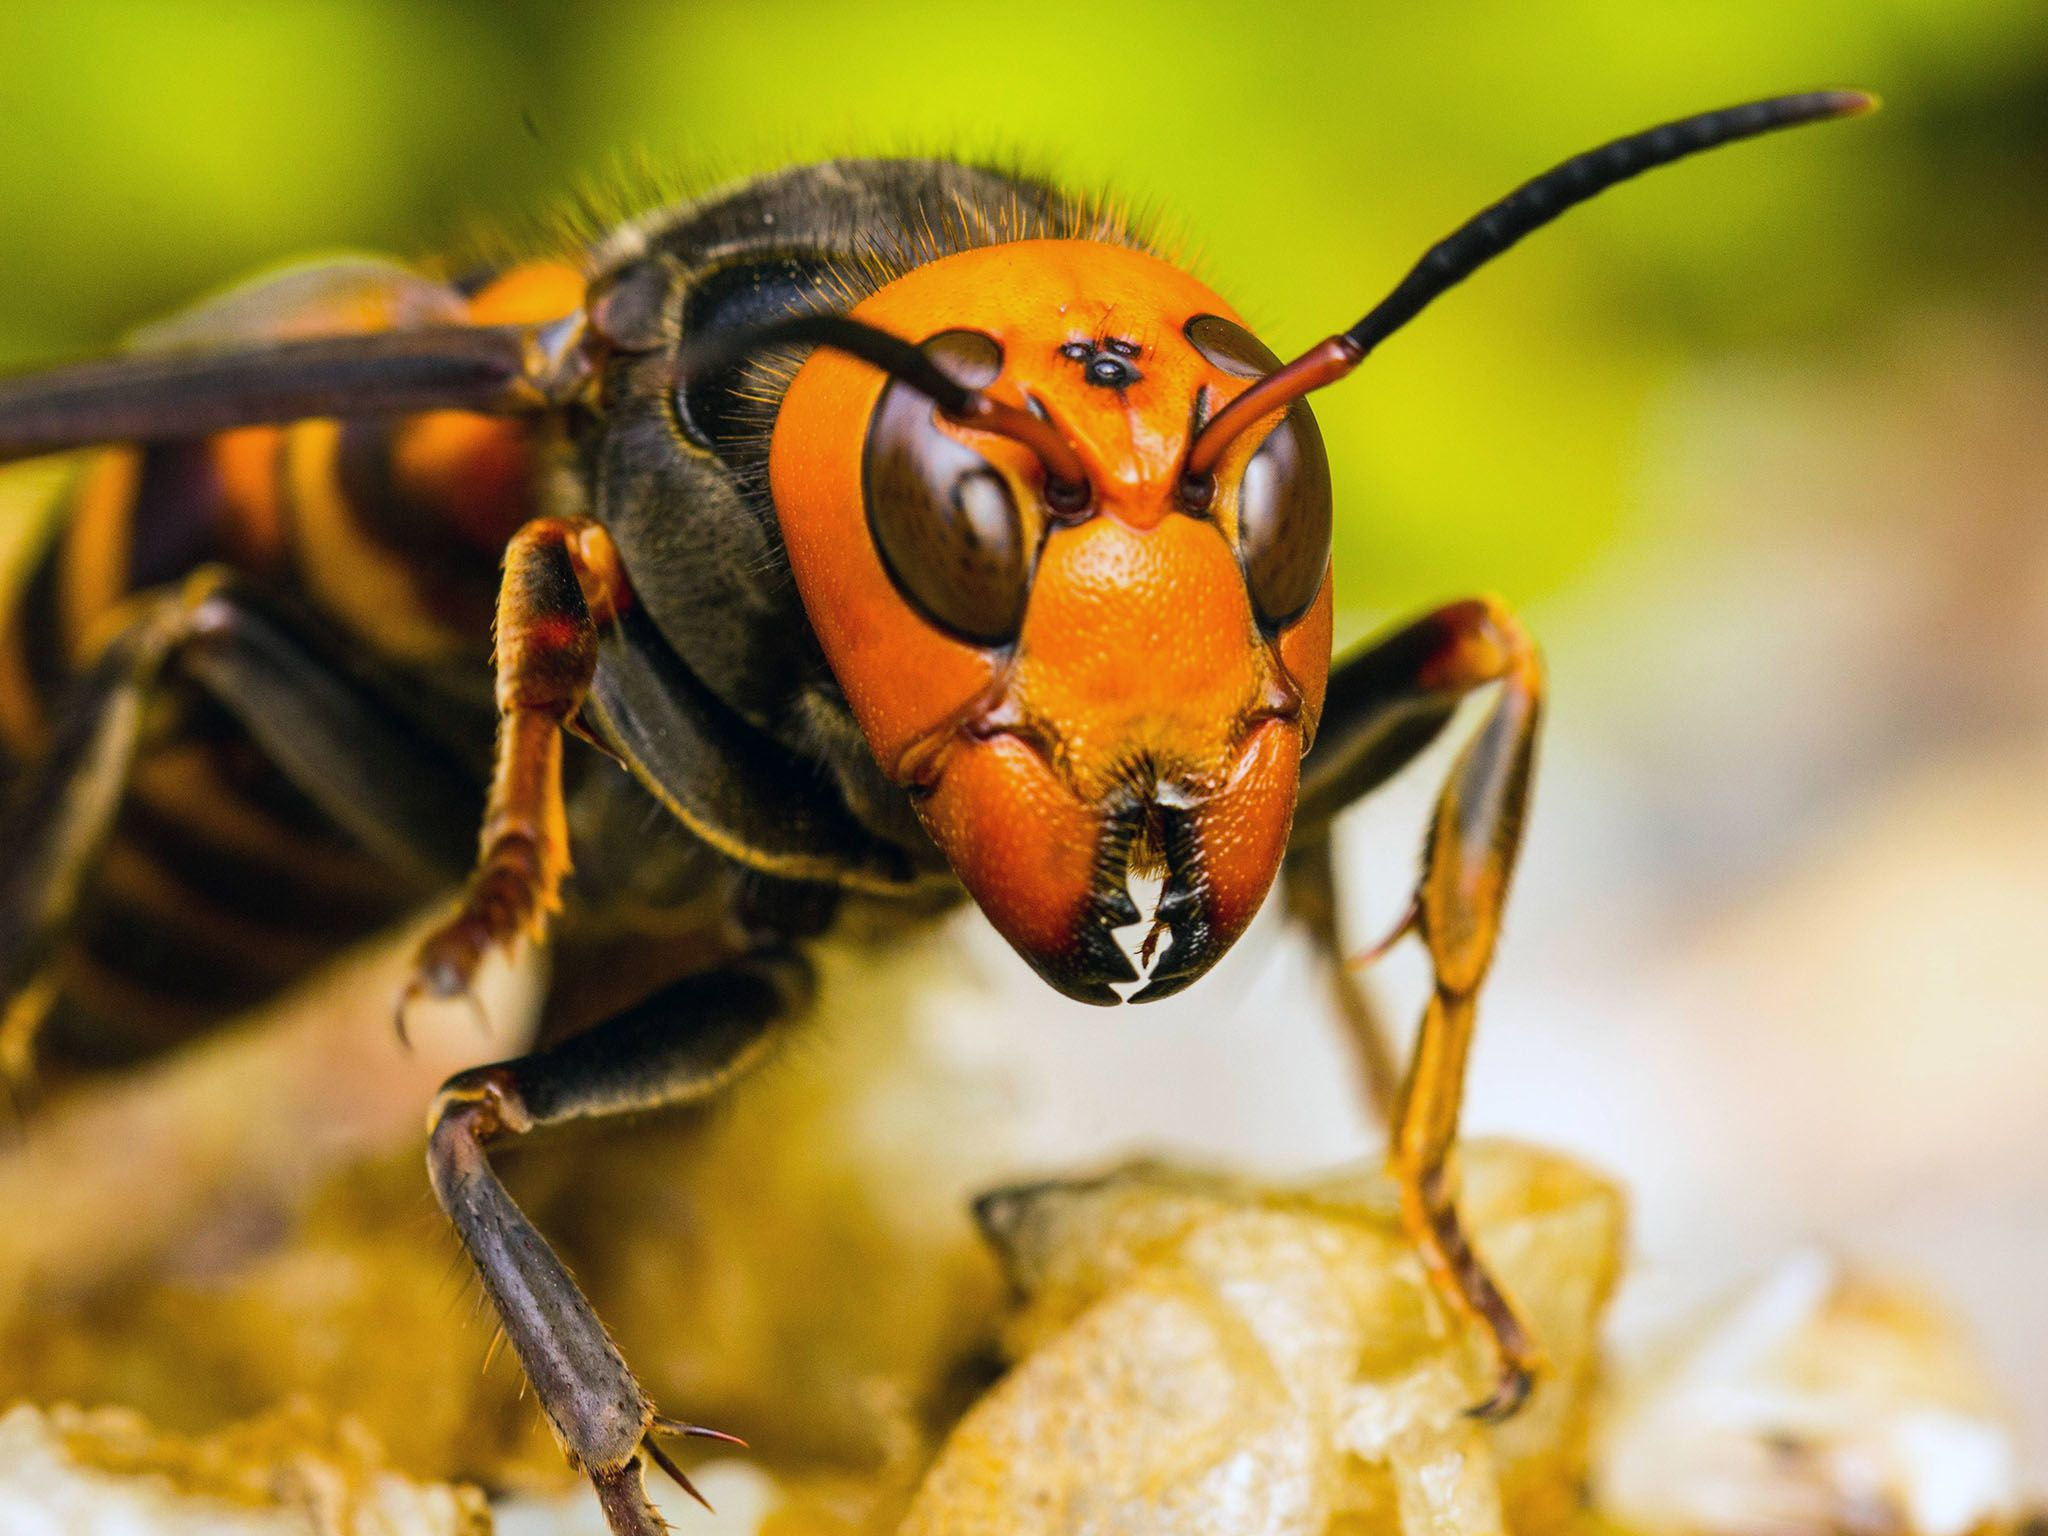 Matsuyama, Japan: Japanese giant hornet's face showing details. This image is from Killer Hornets. [Photo of the day - سپتامبر 2016]